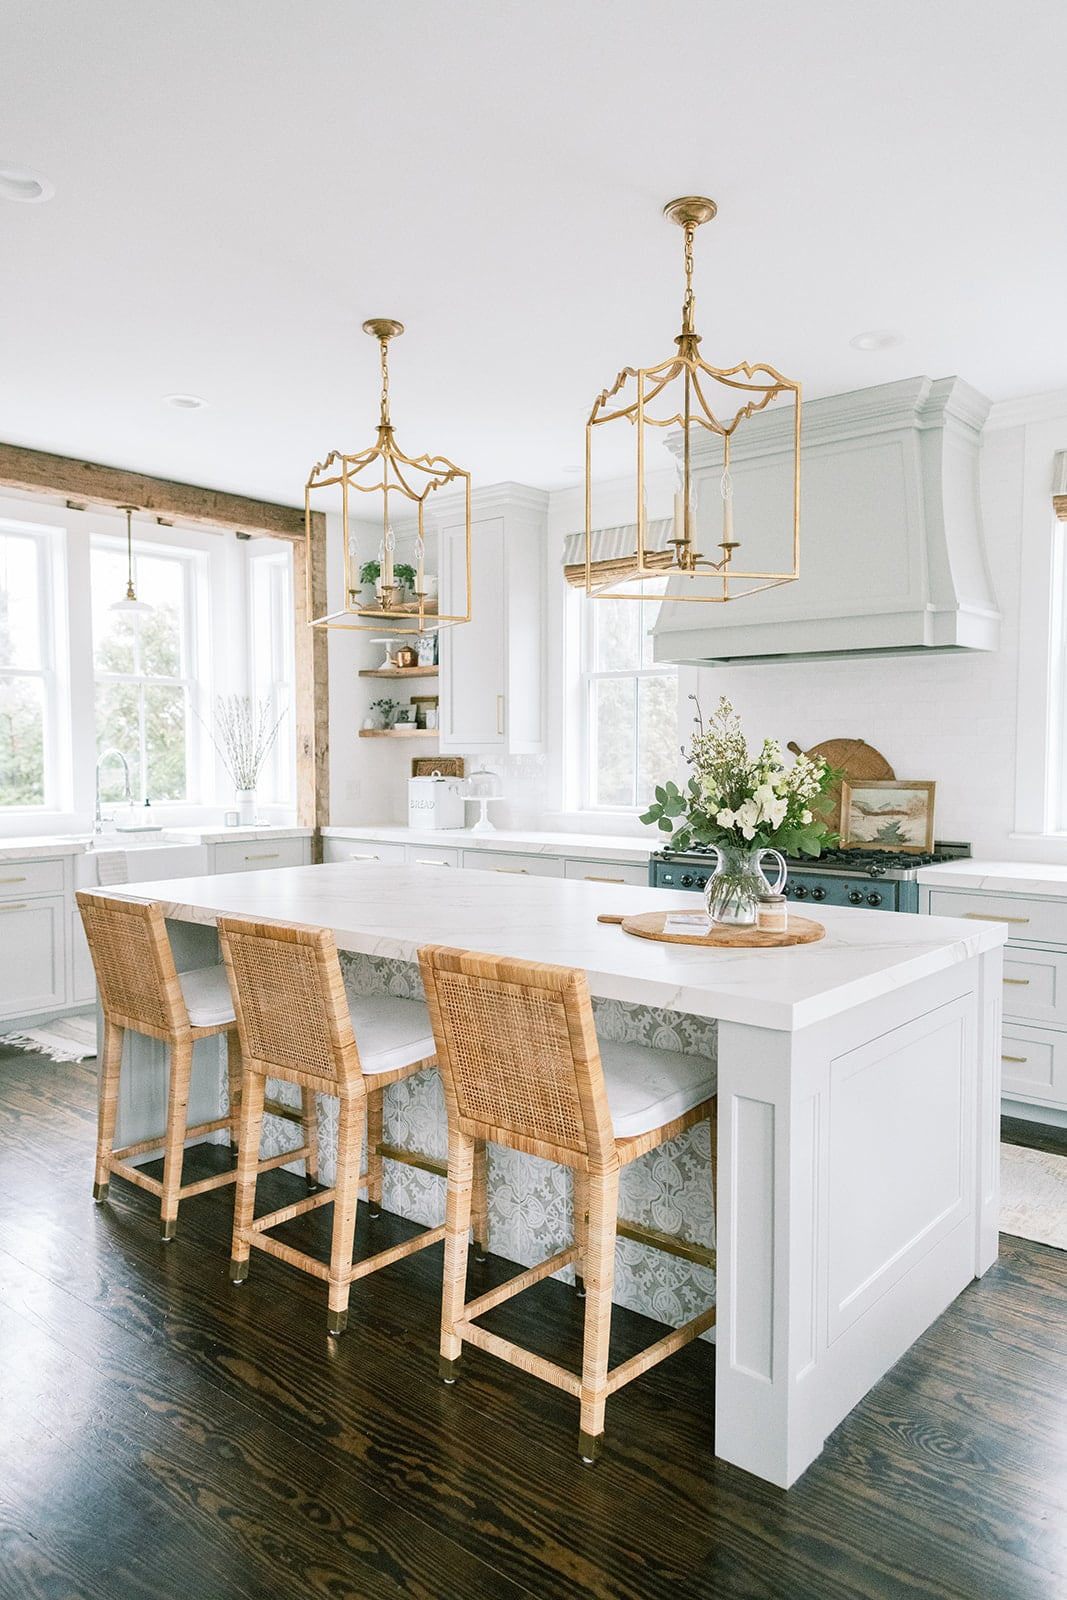 New England home tour kitchen